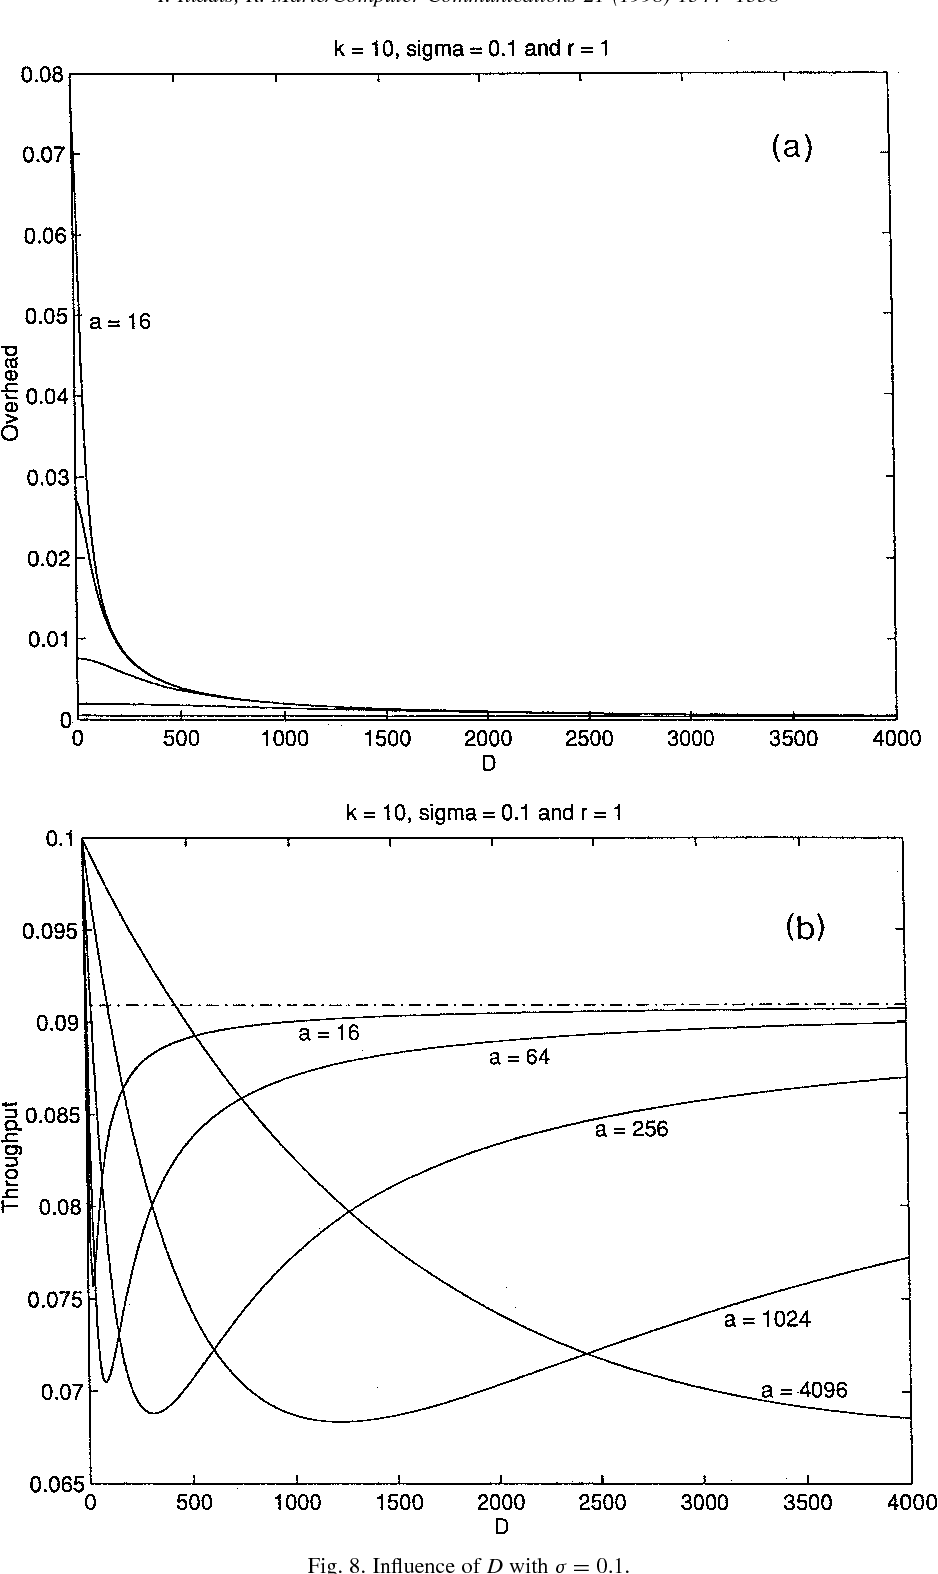 Fig. 8. Influence of D with j ¼ 0.1.